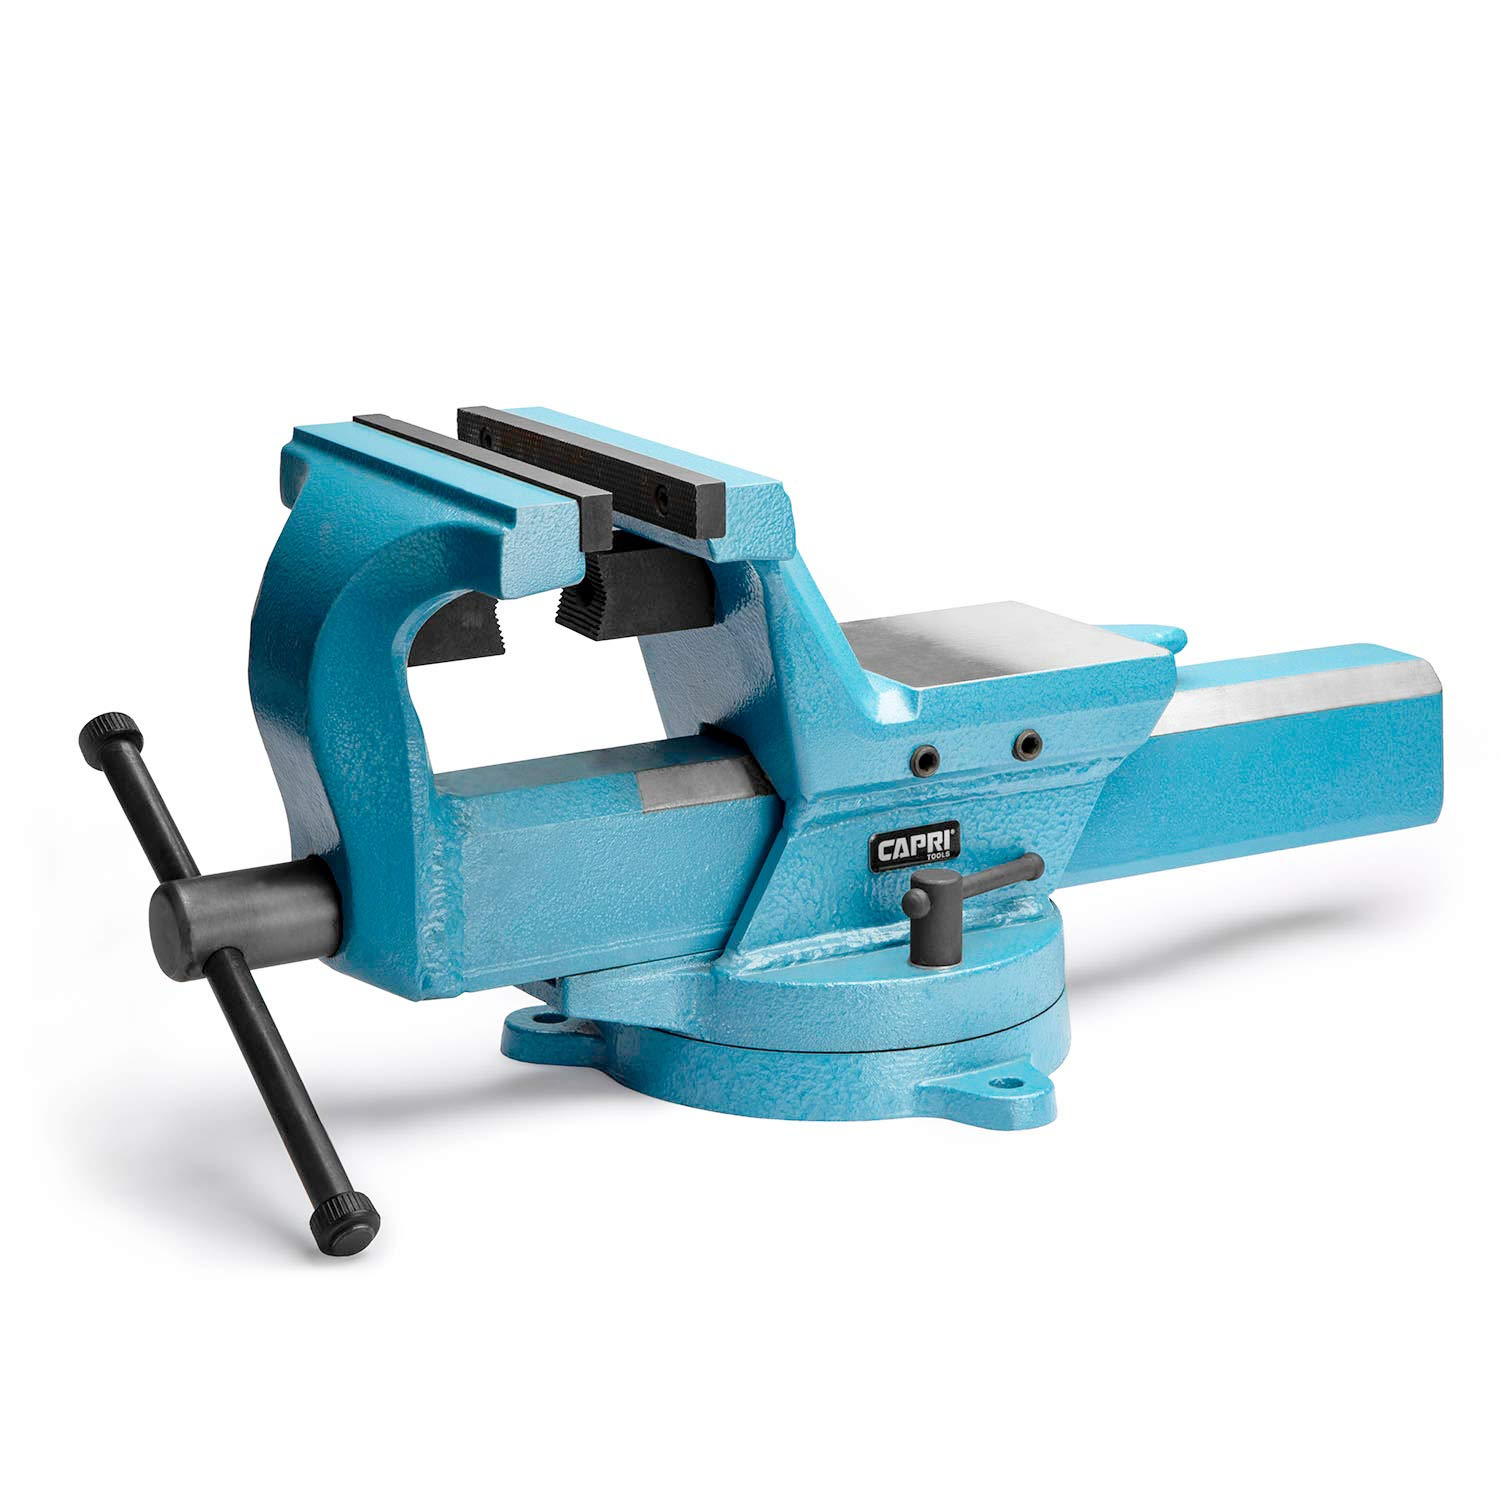 Capri Tools 10517 Ultimate Grip Forged Steel Bench Vise, 7''